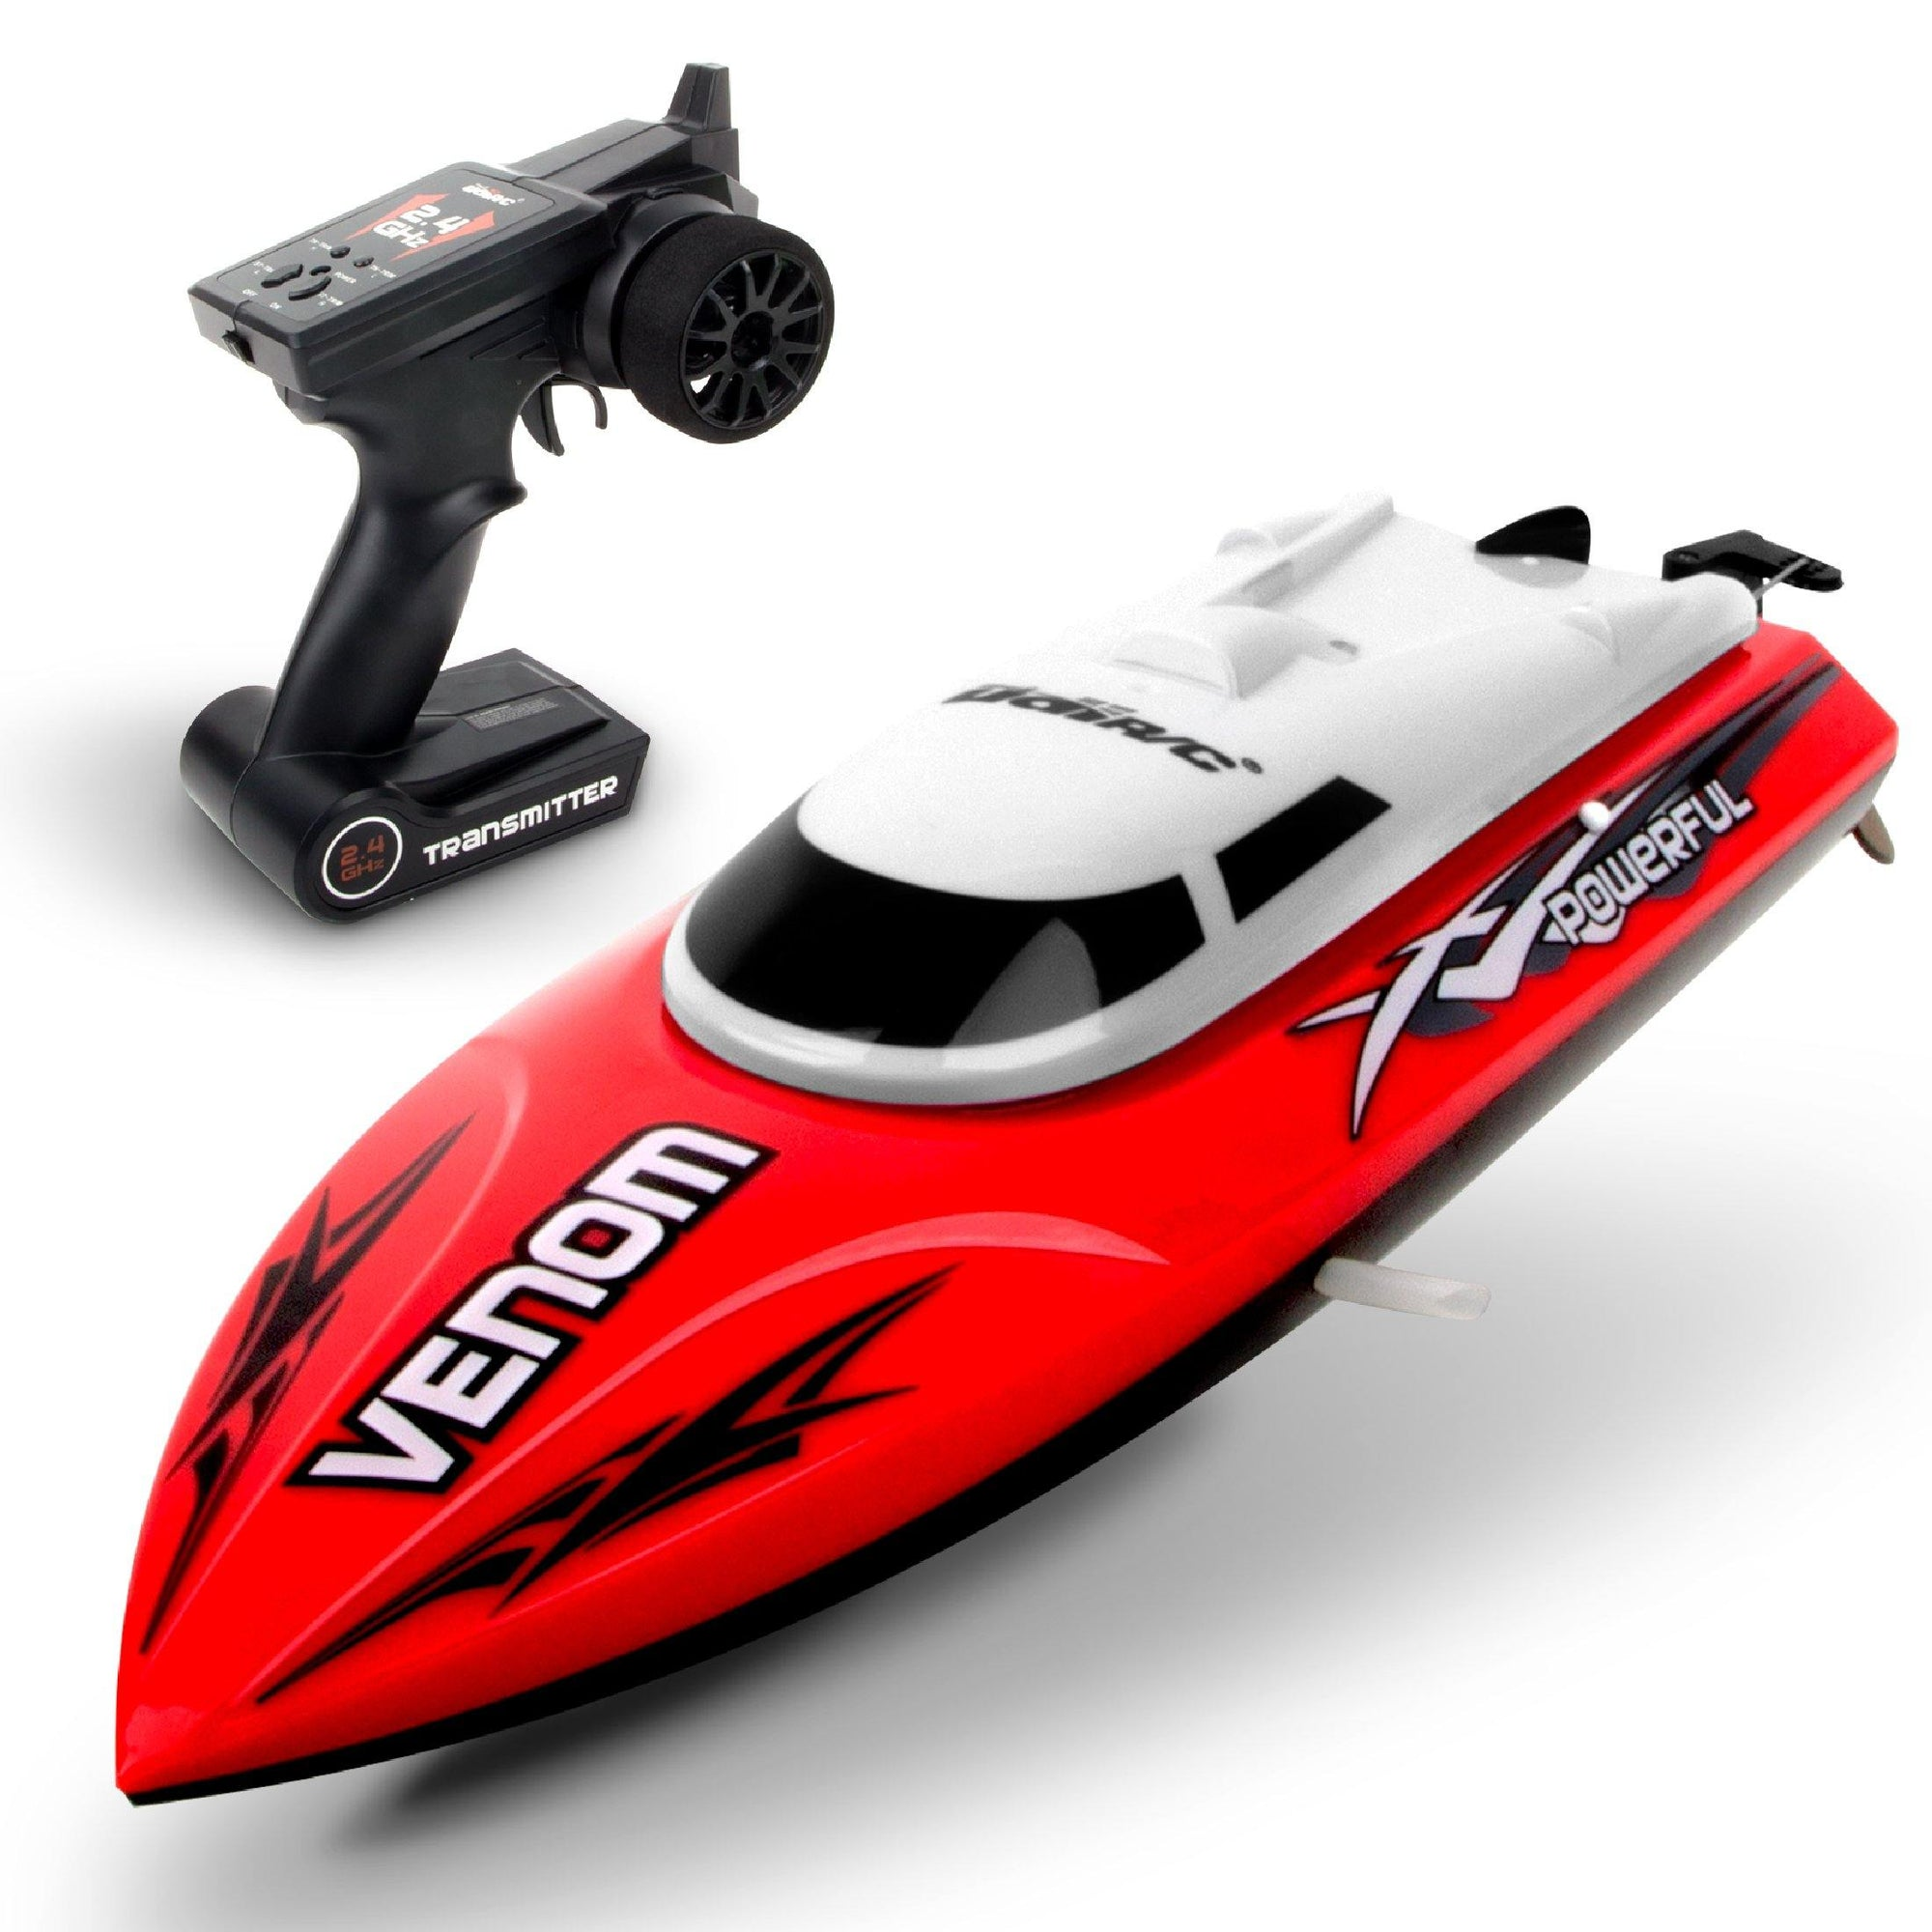 Remote Control Boat For Pools Lakes Udi001 Venom Fast Rc Boat For Kids Adults Self Righting Remote Controlled Boat W Extra Battery Red